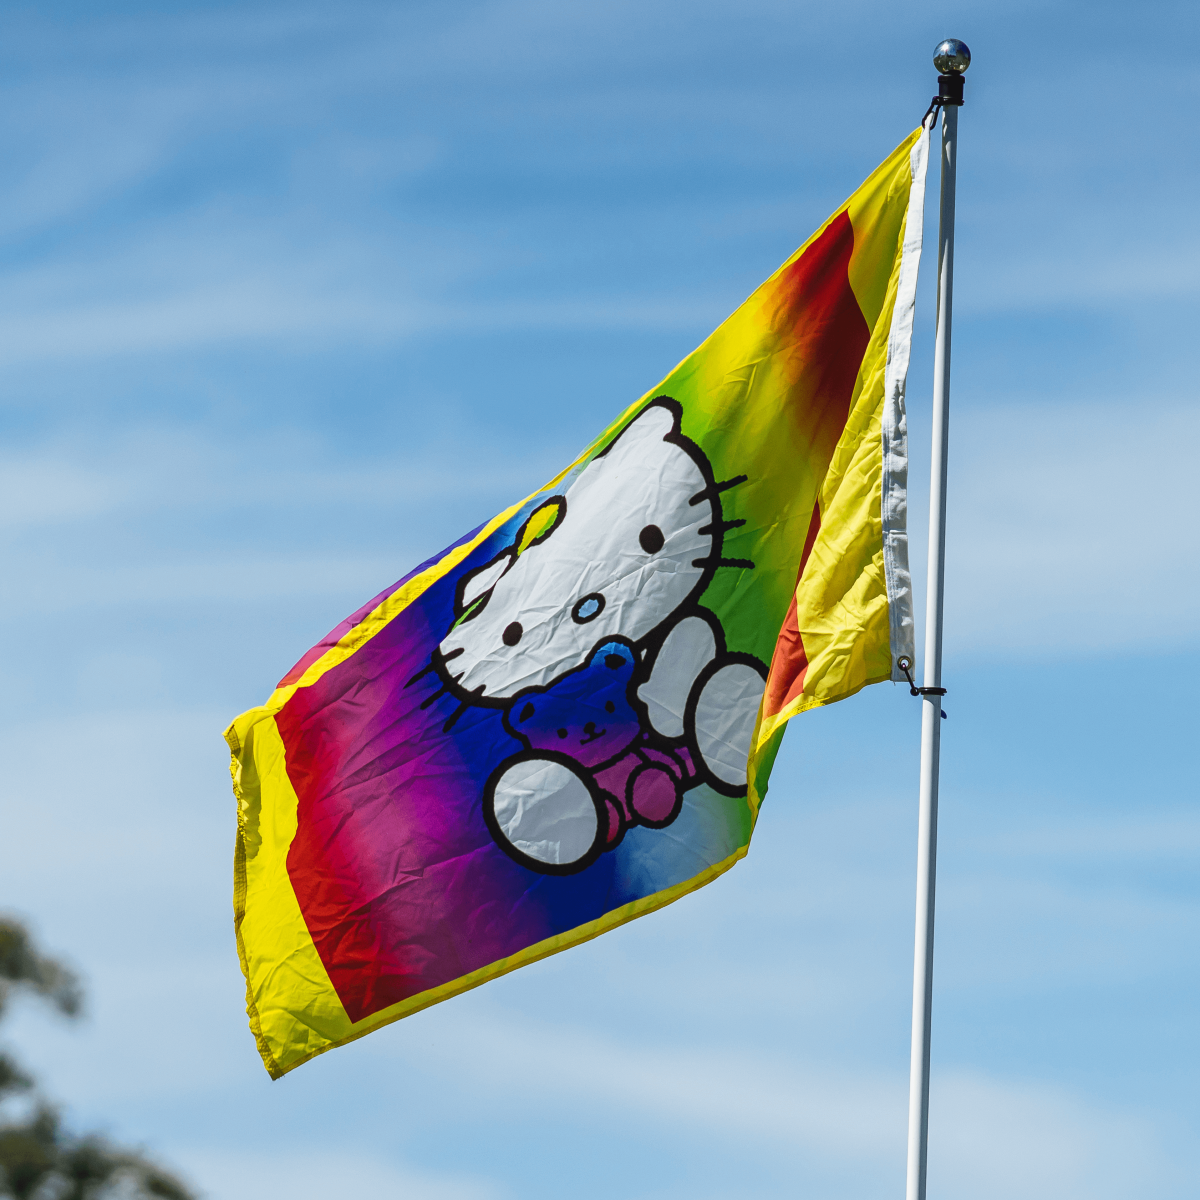 ACL Austin City Limits Music Festival 2016 flags Hello Kitty